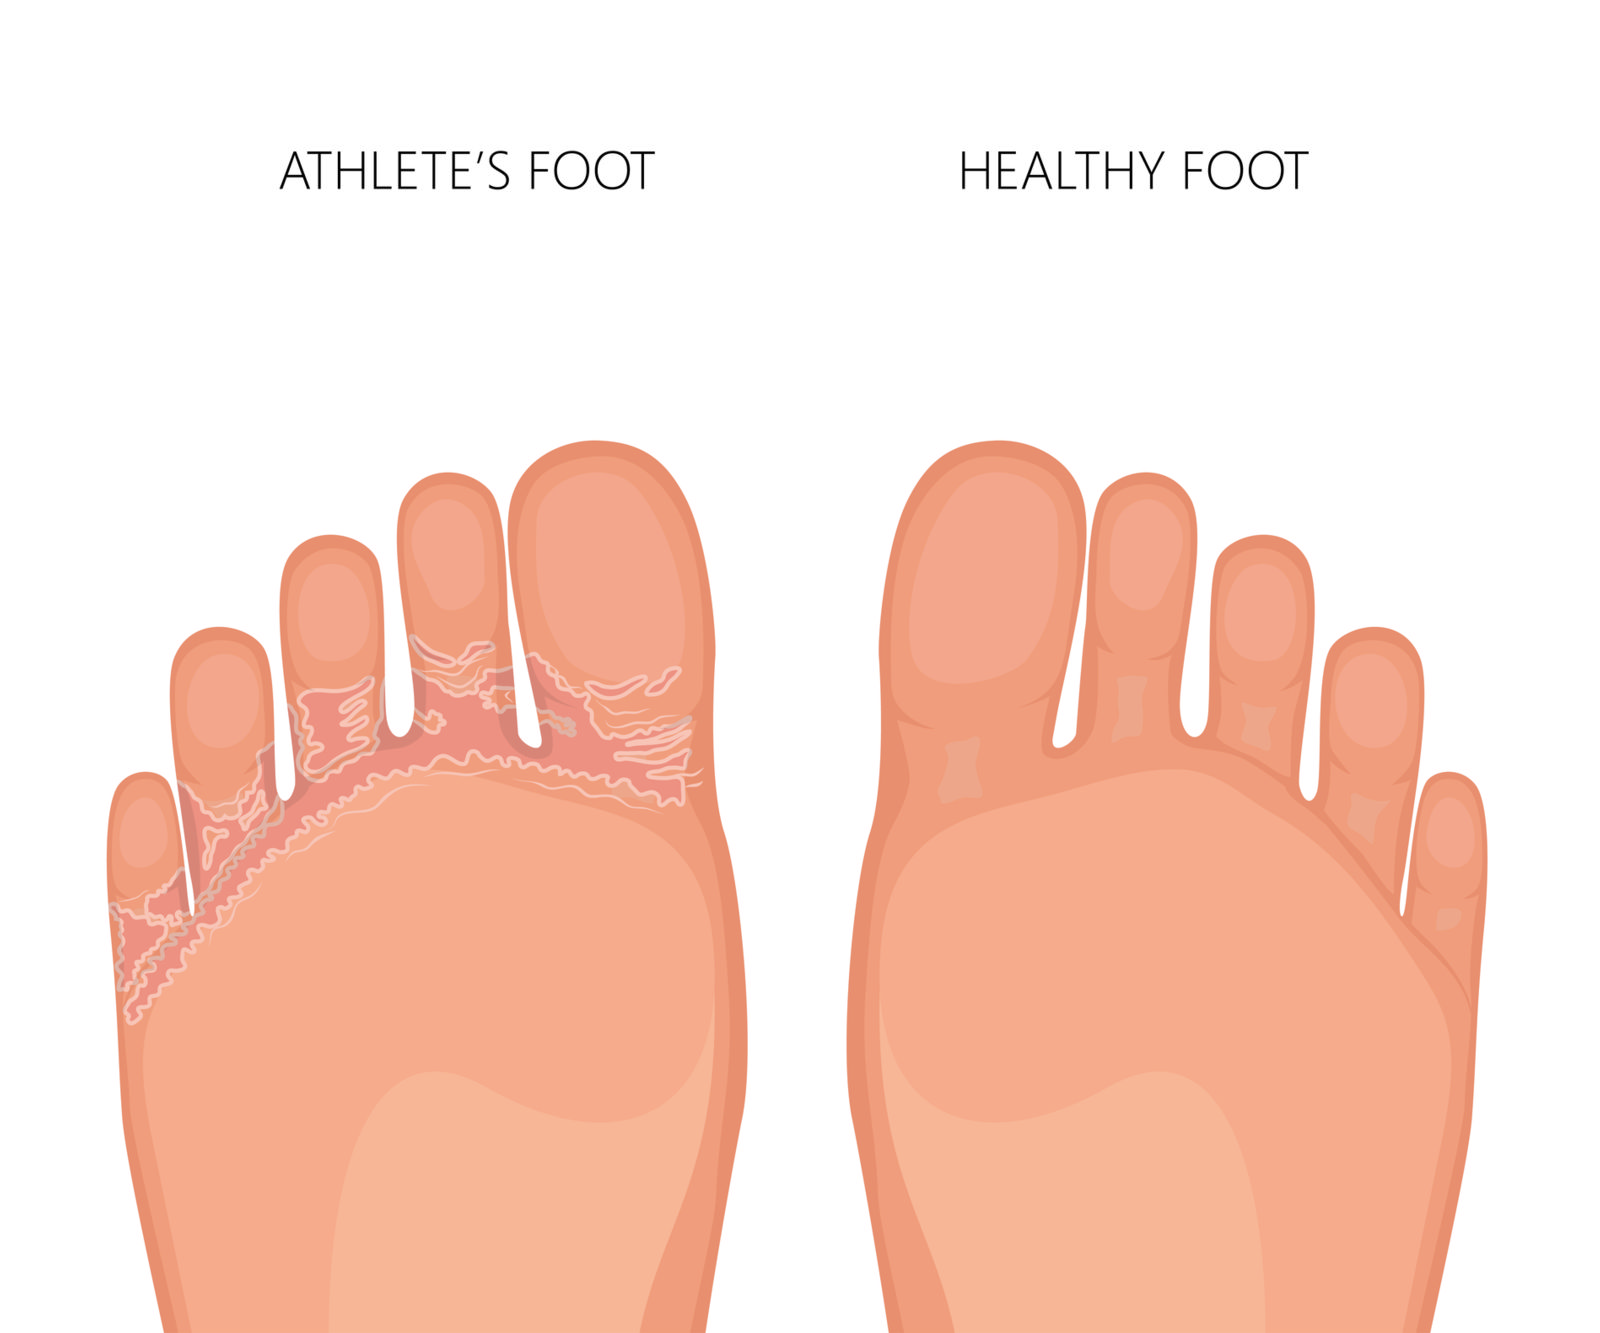 Athlete's foot is just one infection you need to look for on your daily diabetic foot checks